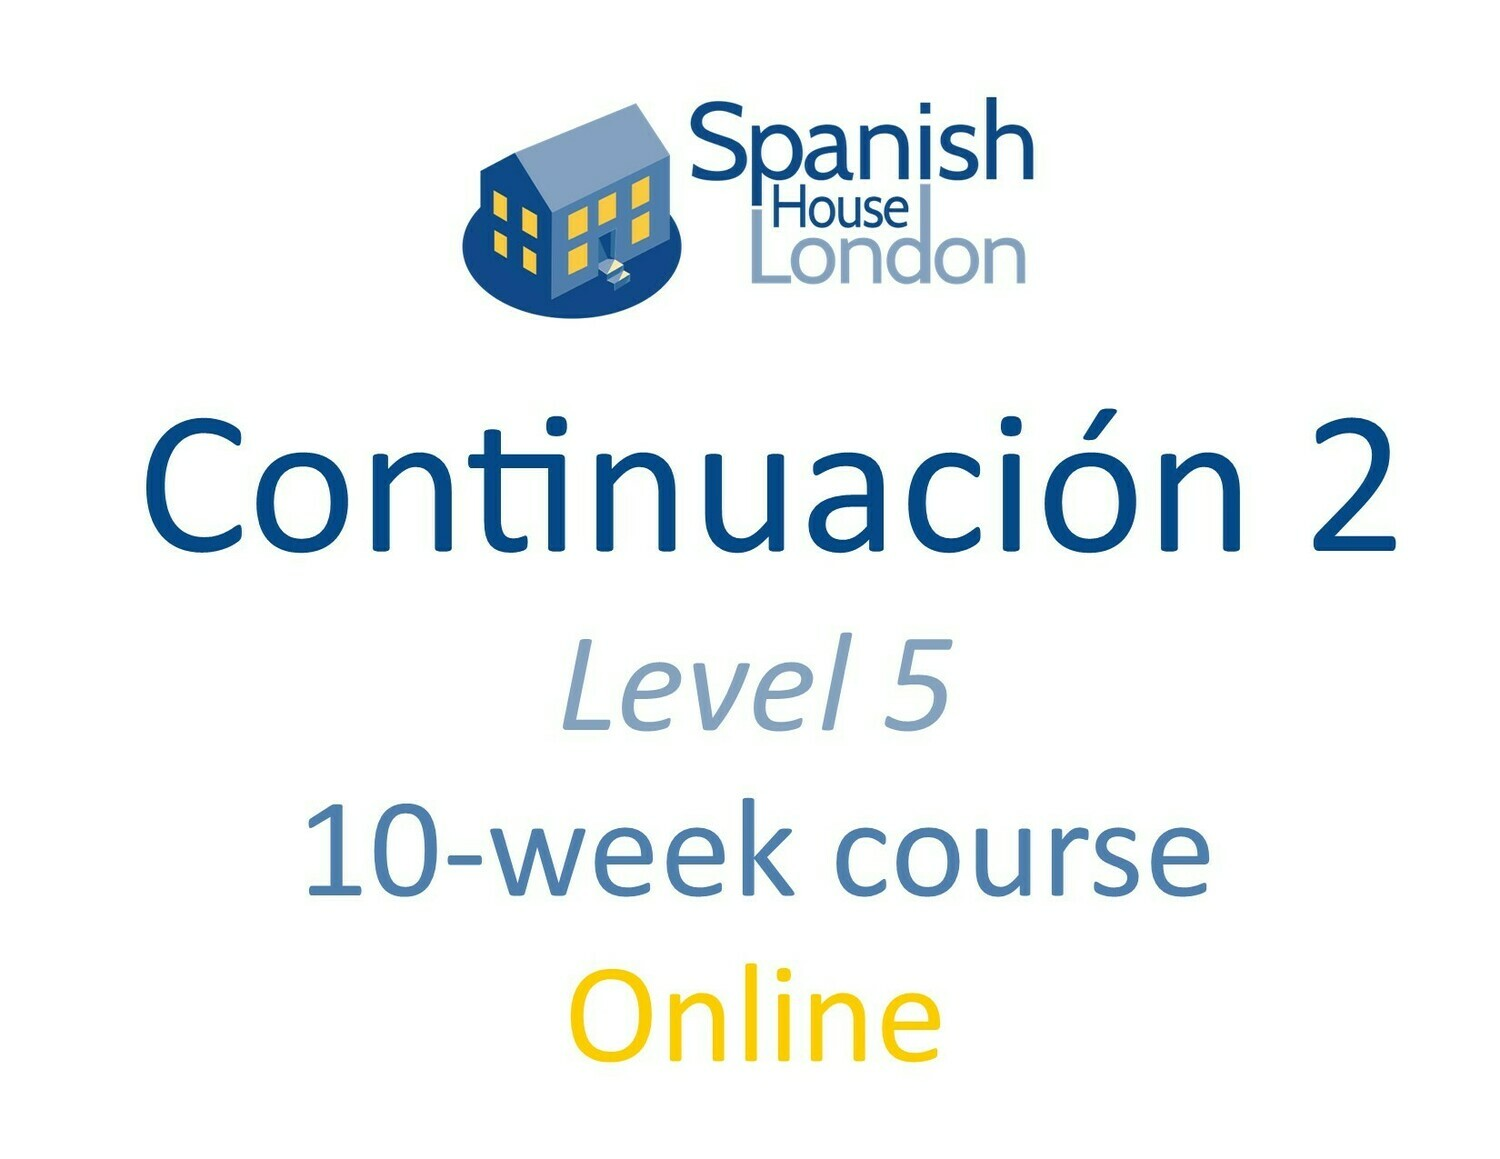 Continuacion 2 Course starting on 20th April at 6pm